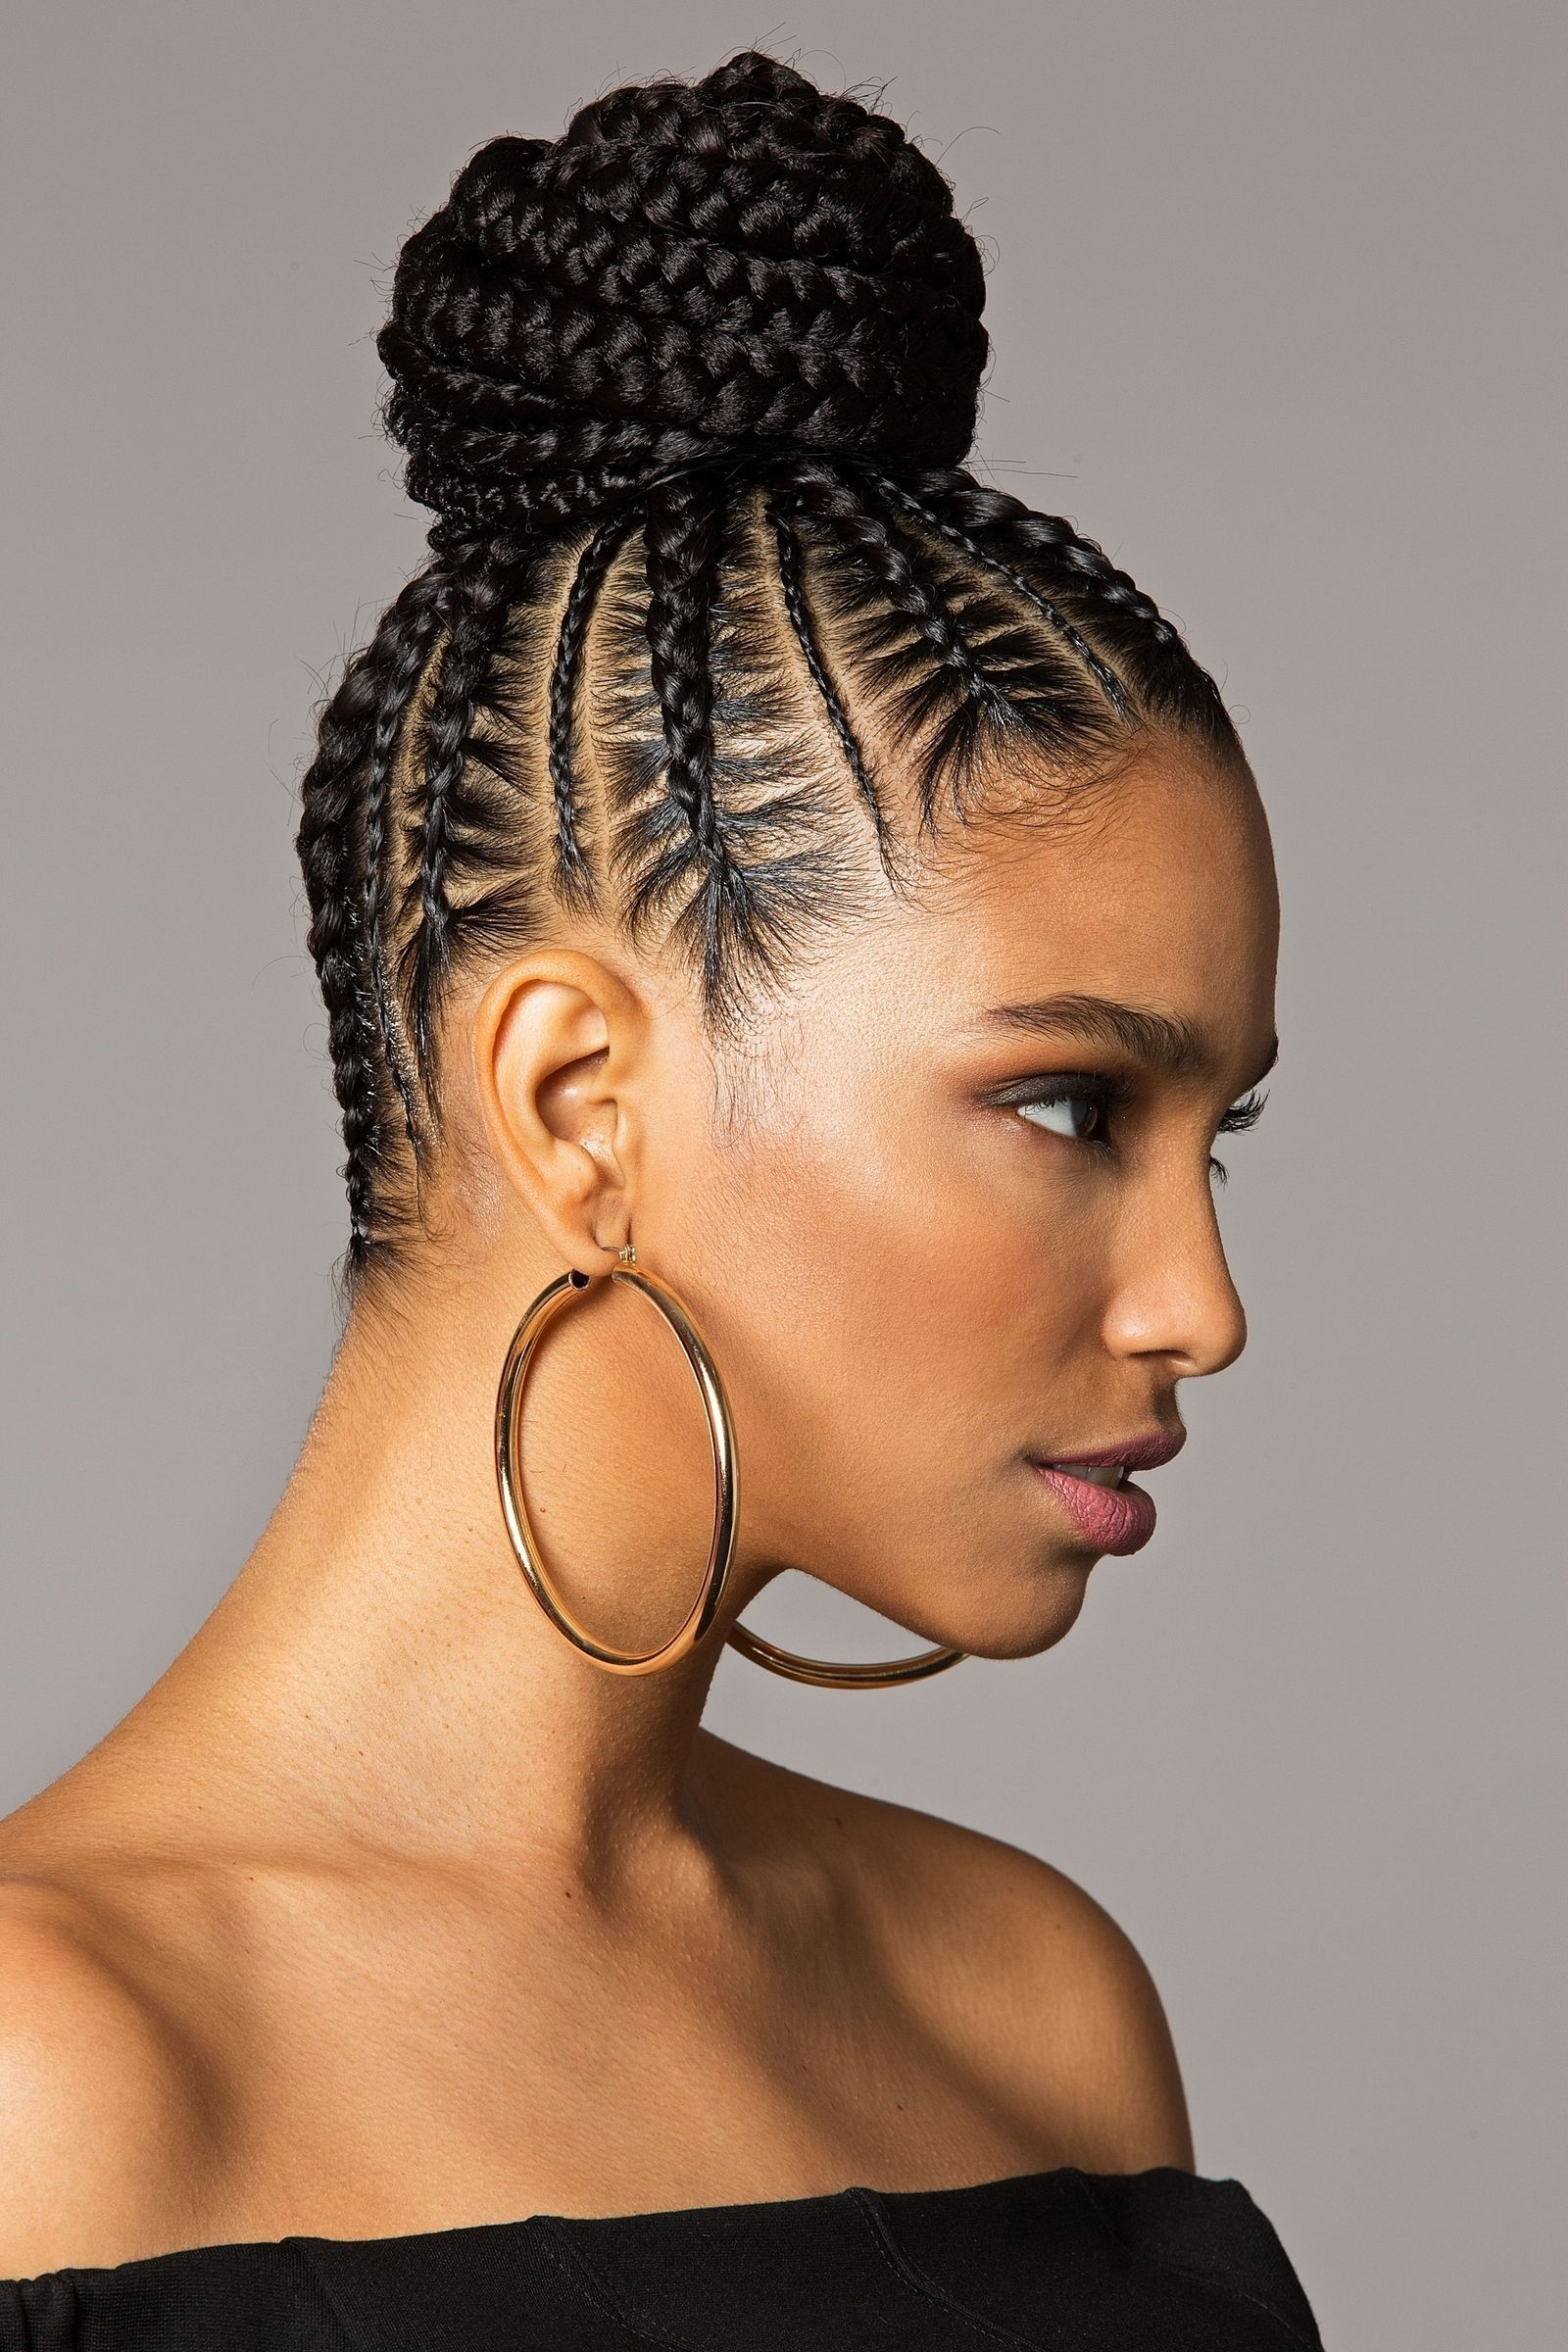 15 Best of Black Braided Bun Hairstyles